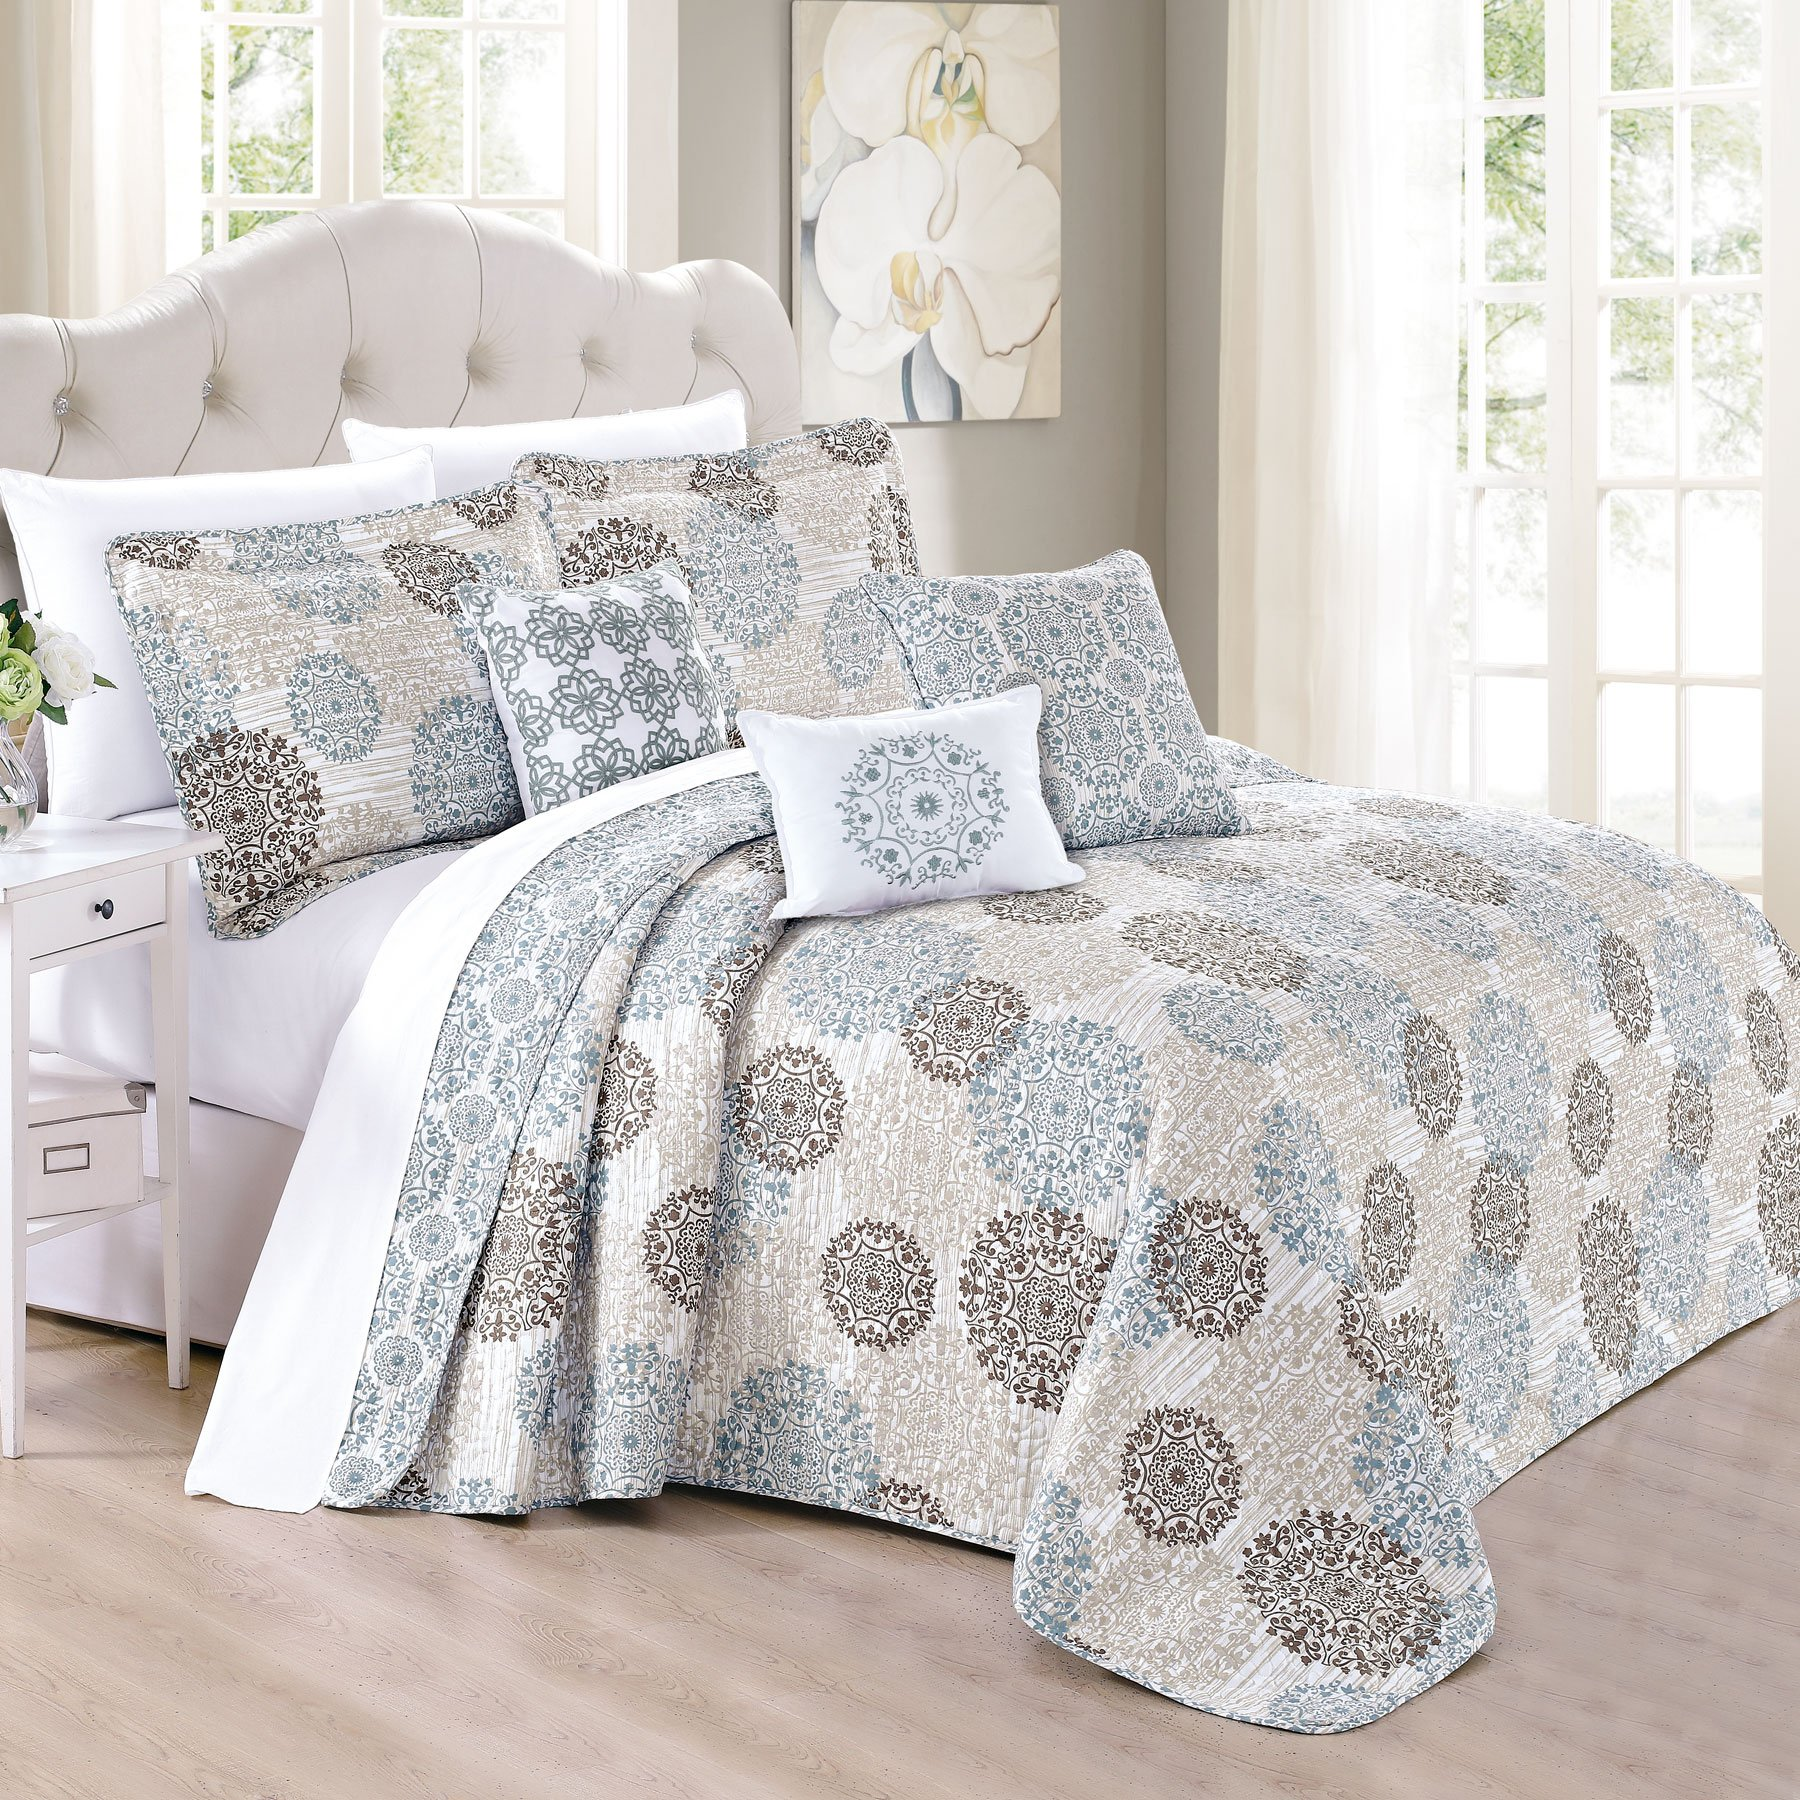 Home Soft Things Serenta 6 Piece Marina MDLN Printed Microfiber Quilts Coverlet Set, Oversize King, Cameo Blue by Home Soft Things